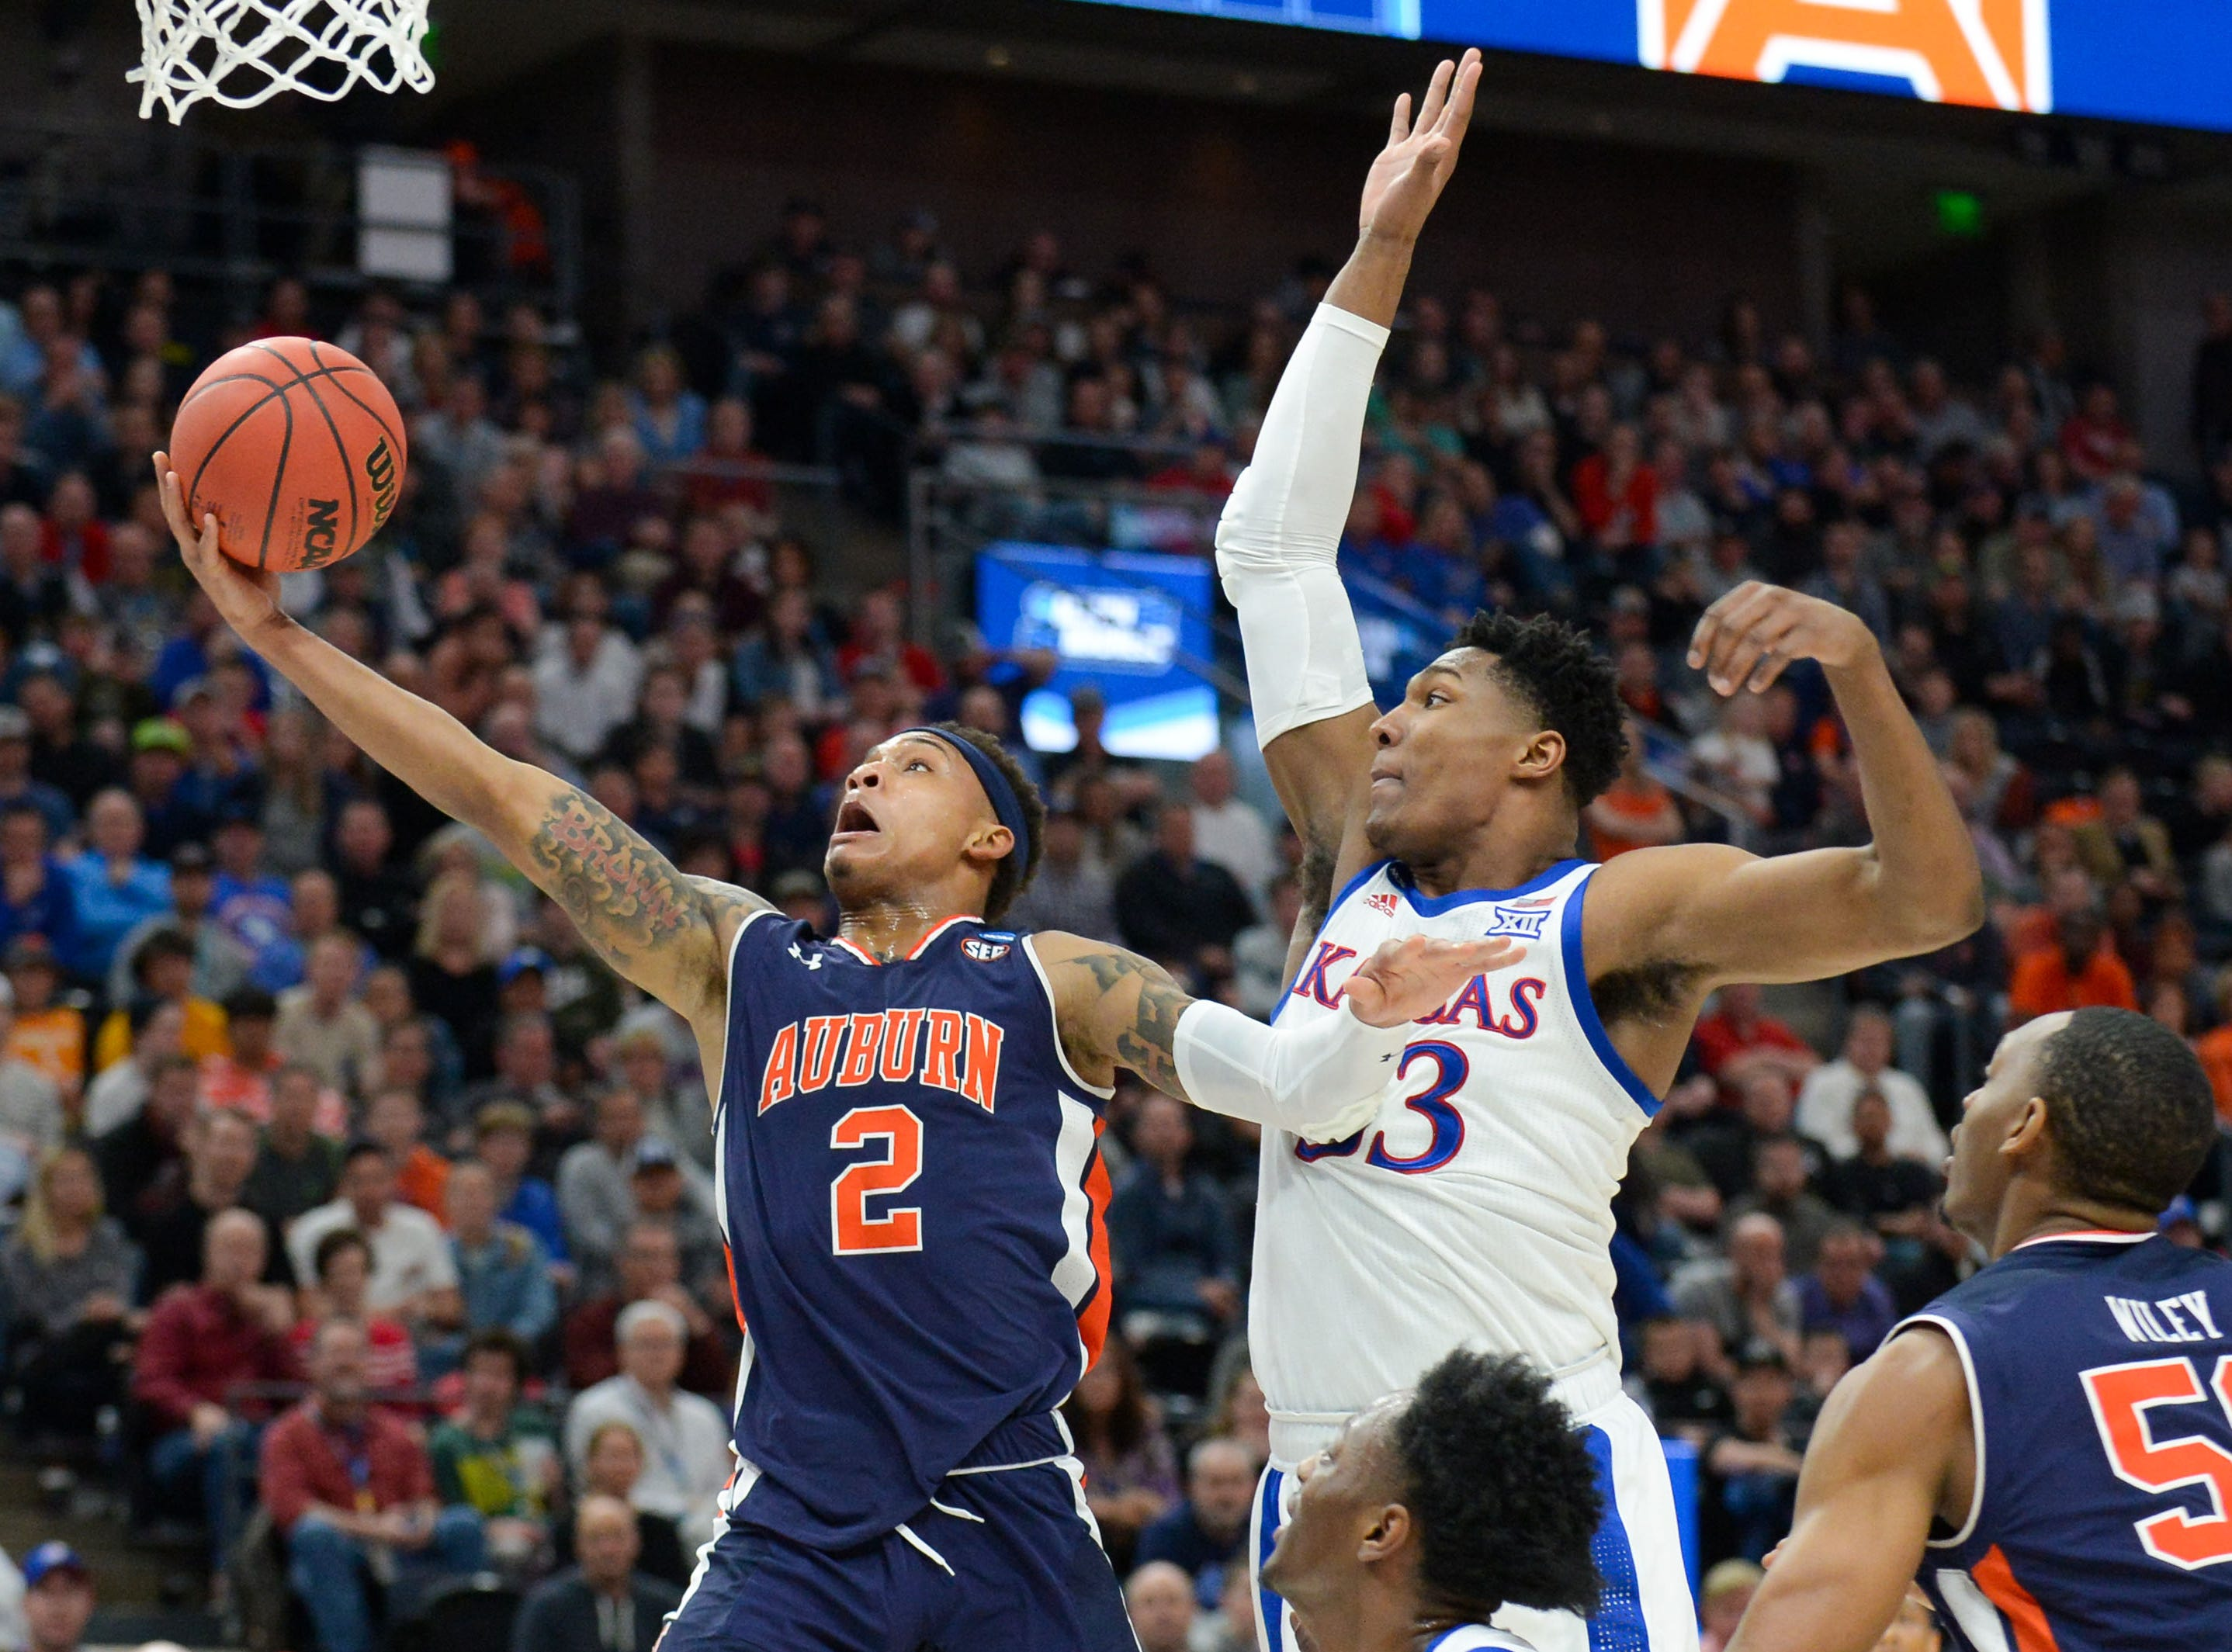 Mar 23, 2019; Salt Lake City, UT, USA; Auburn Tigers guard Bryce Brown (2) goes up for a shot as Kansas Jayhawks forward David McCormack (33) defends during the first half in the second round of the 2019 NCAA Tournament at Vivint Smart Home Arena. Mandatory Credit: Gary A. Vasquez-USA TODAY Sports